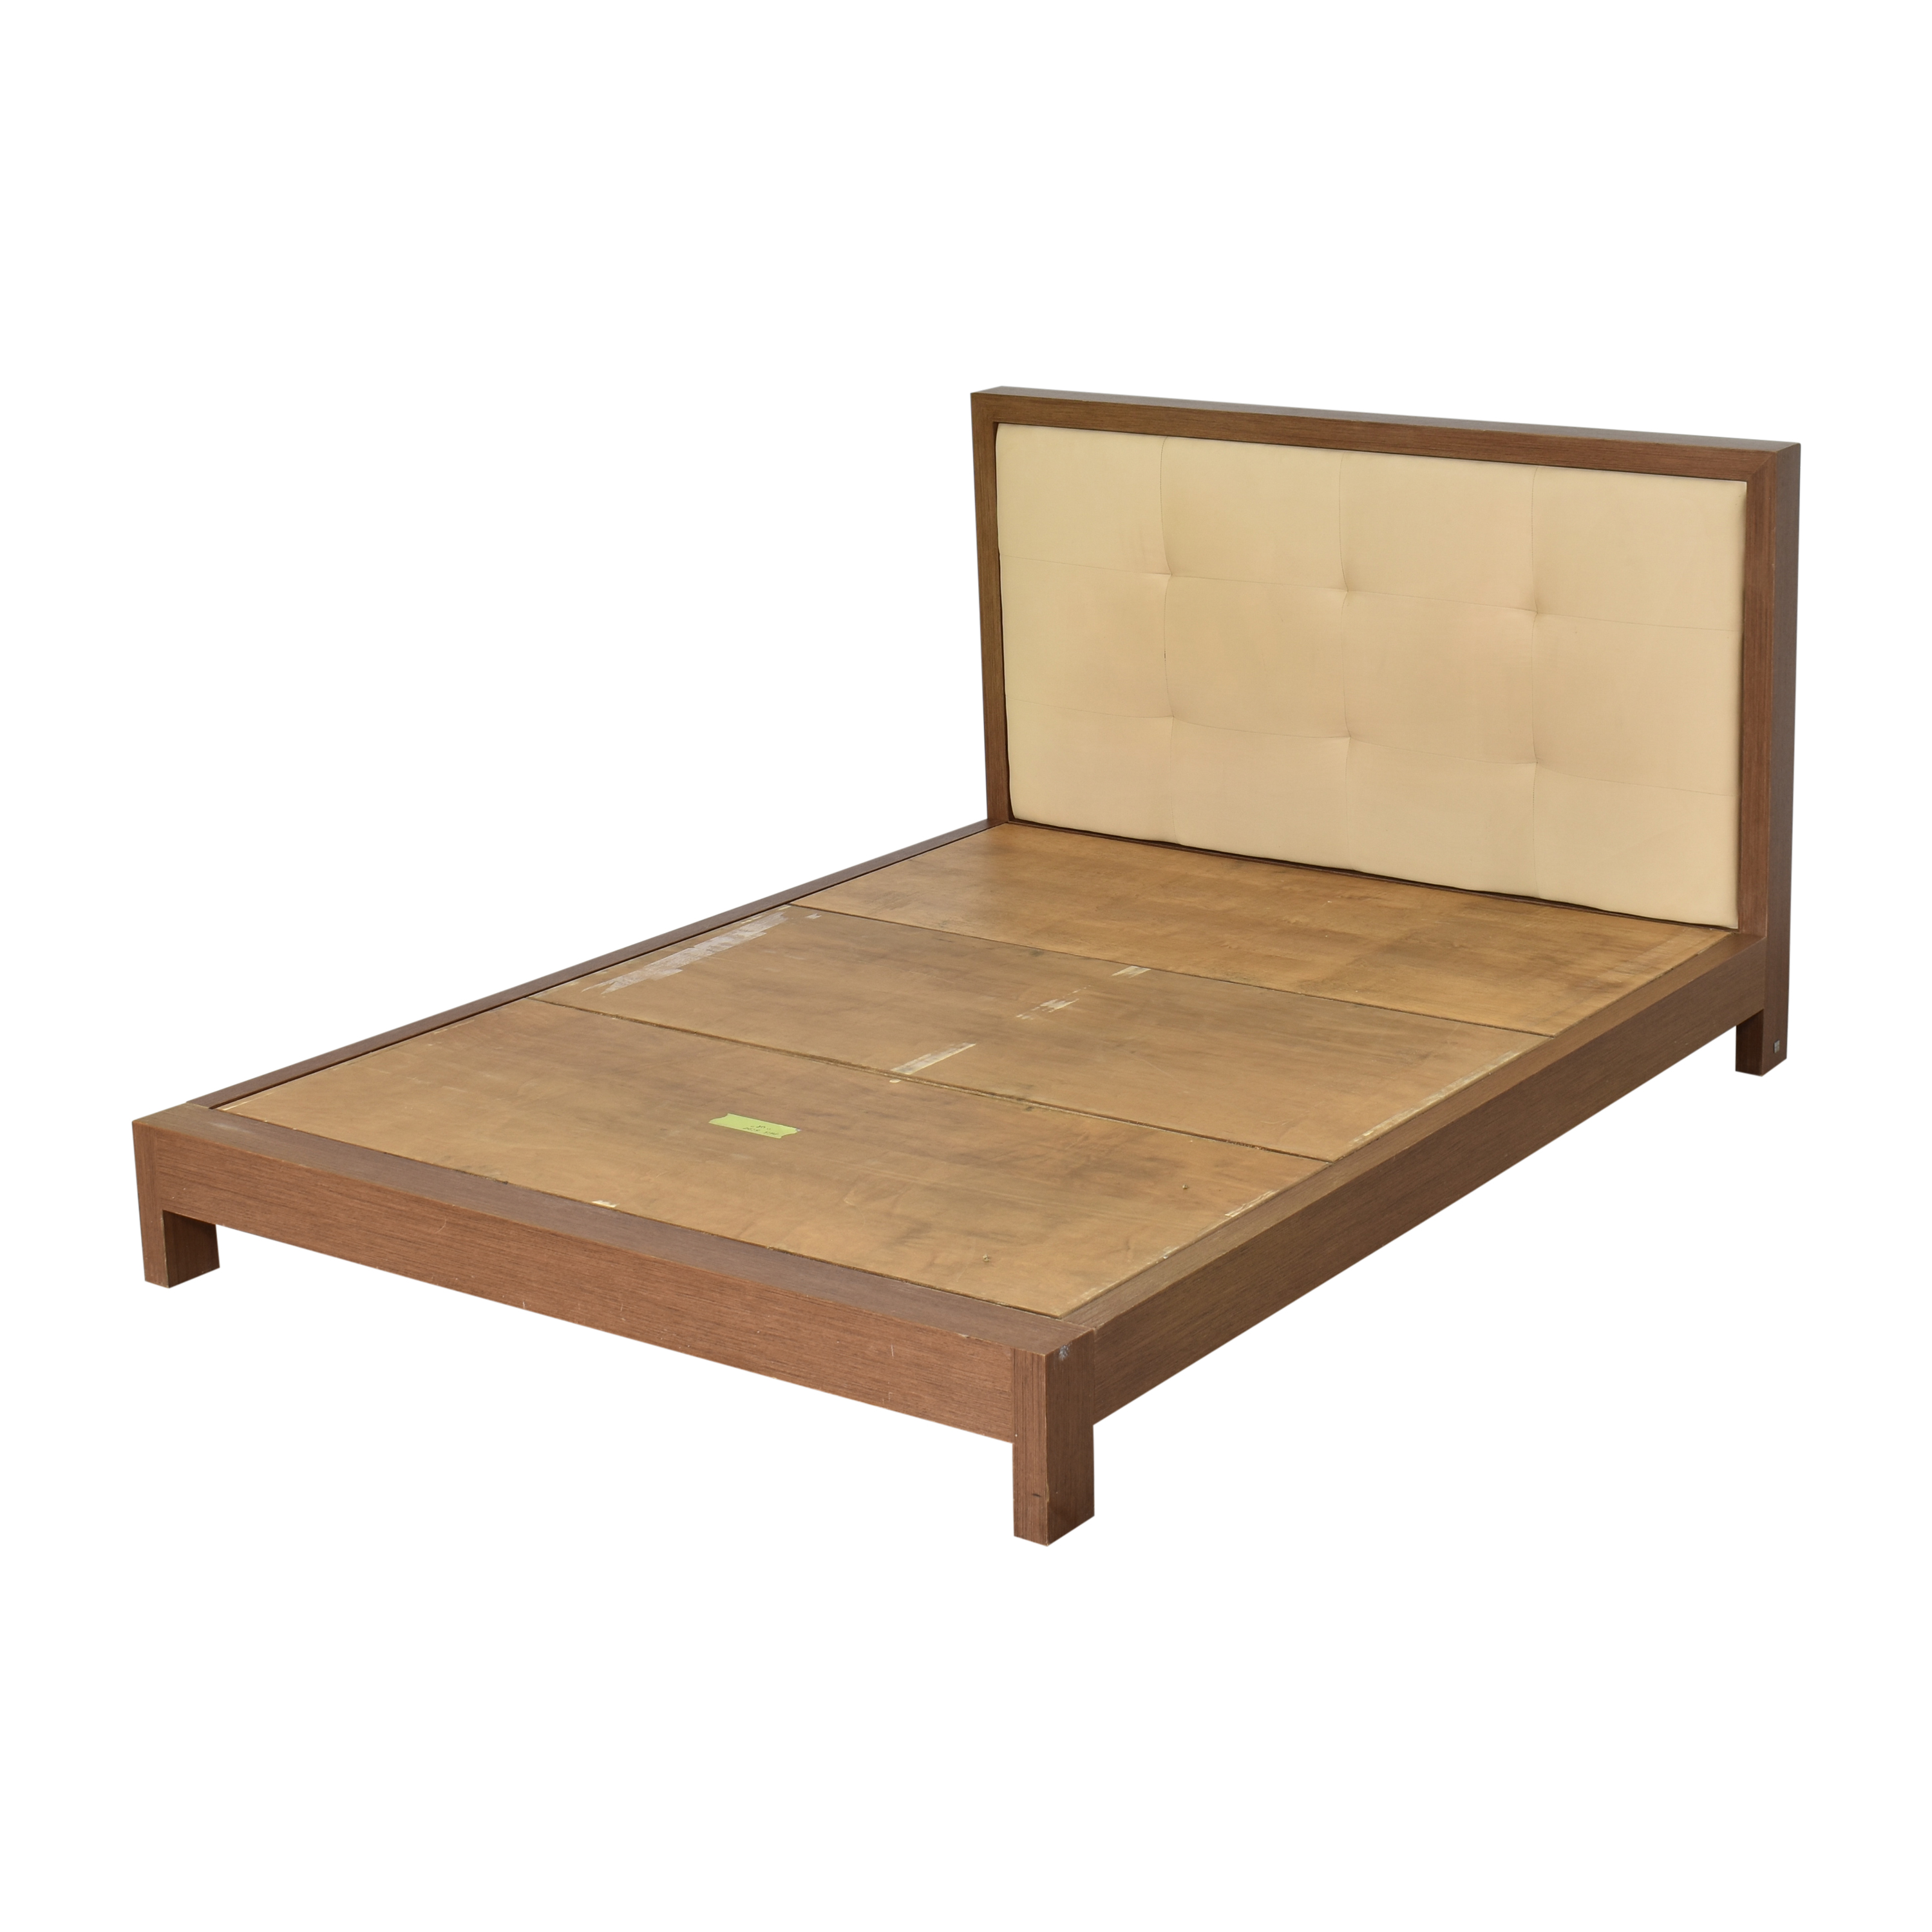 Desiron Desiron Chelsea Upholstered Queen Bed dimensions